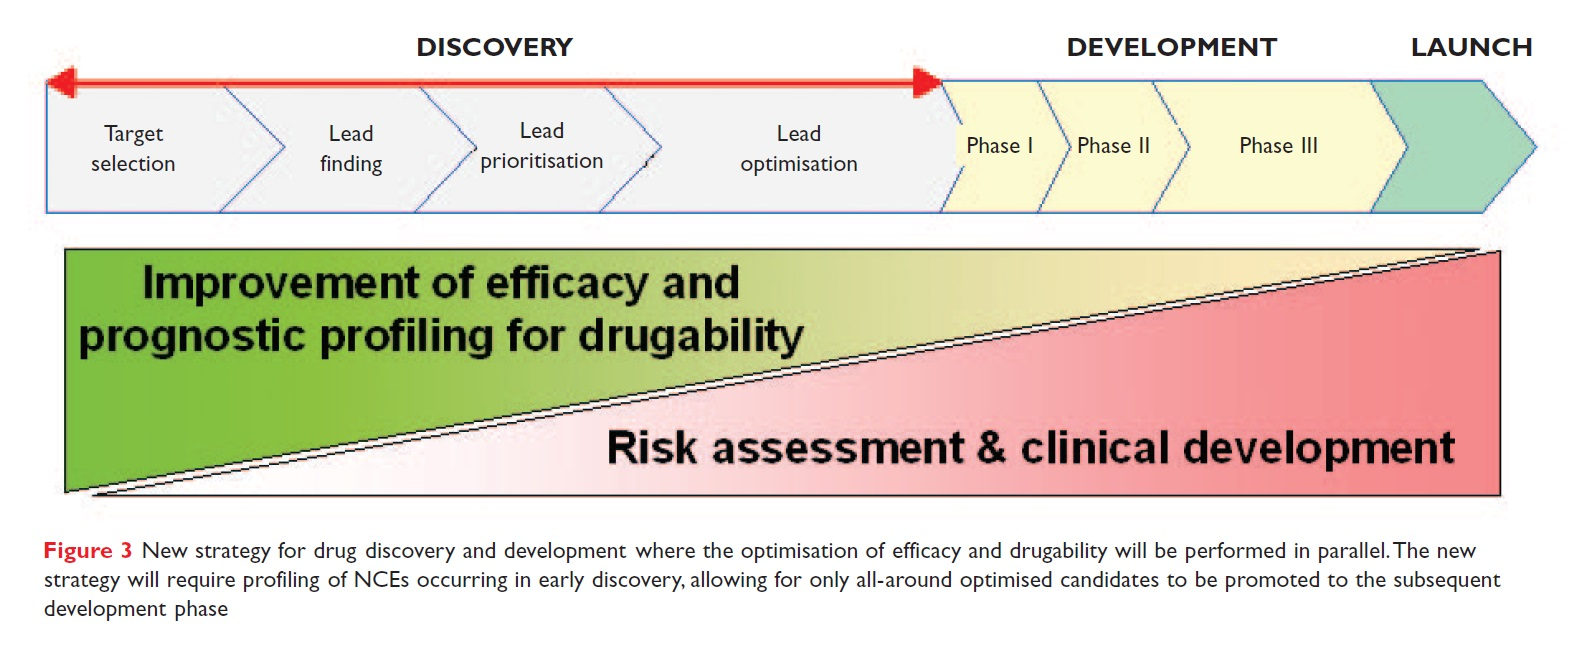 Figure 3 New strategy for drug discovery and development where the optimisation of efficacy and drugability